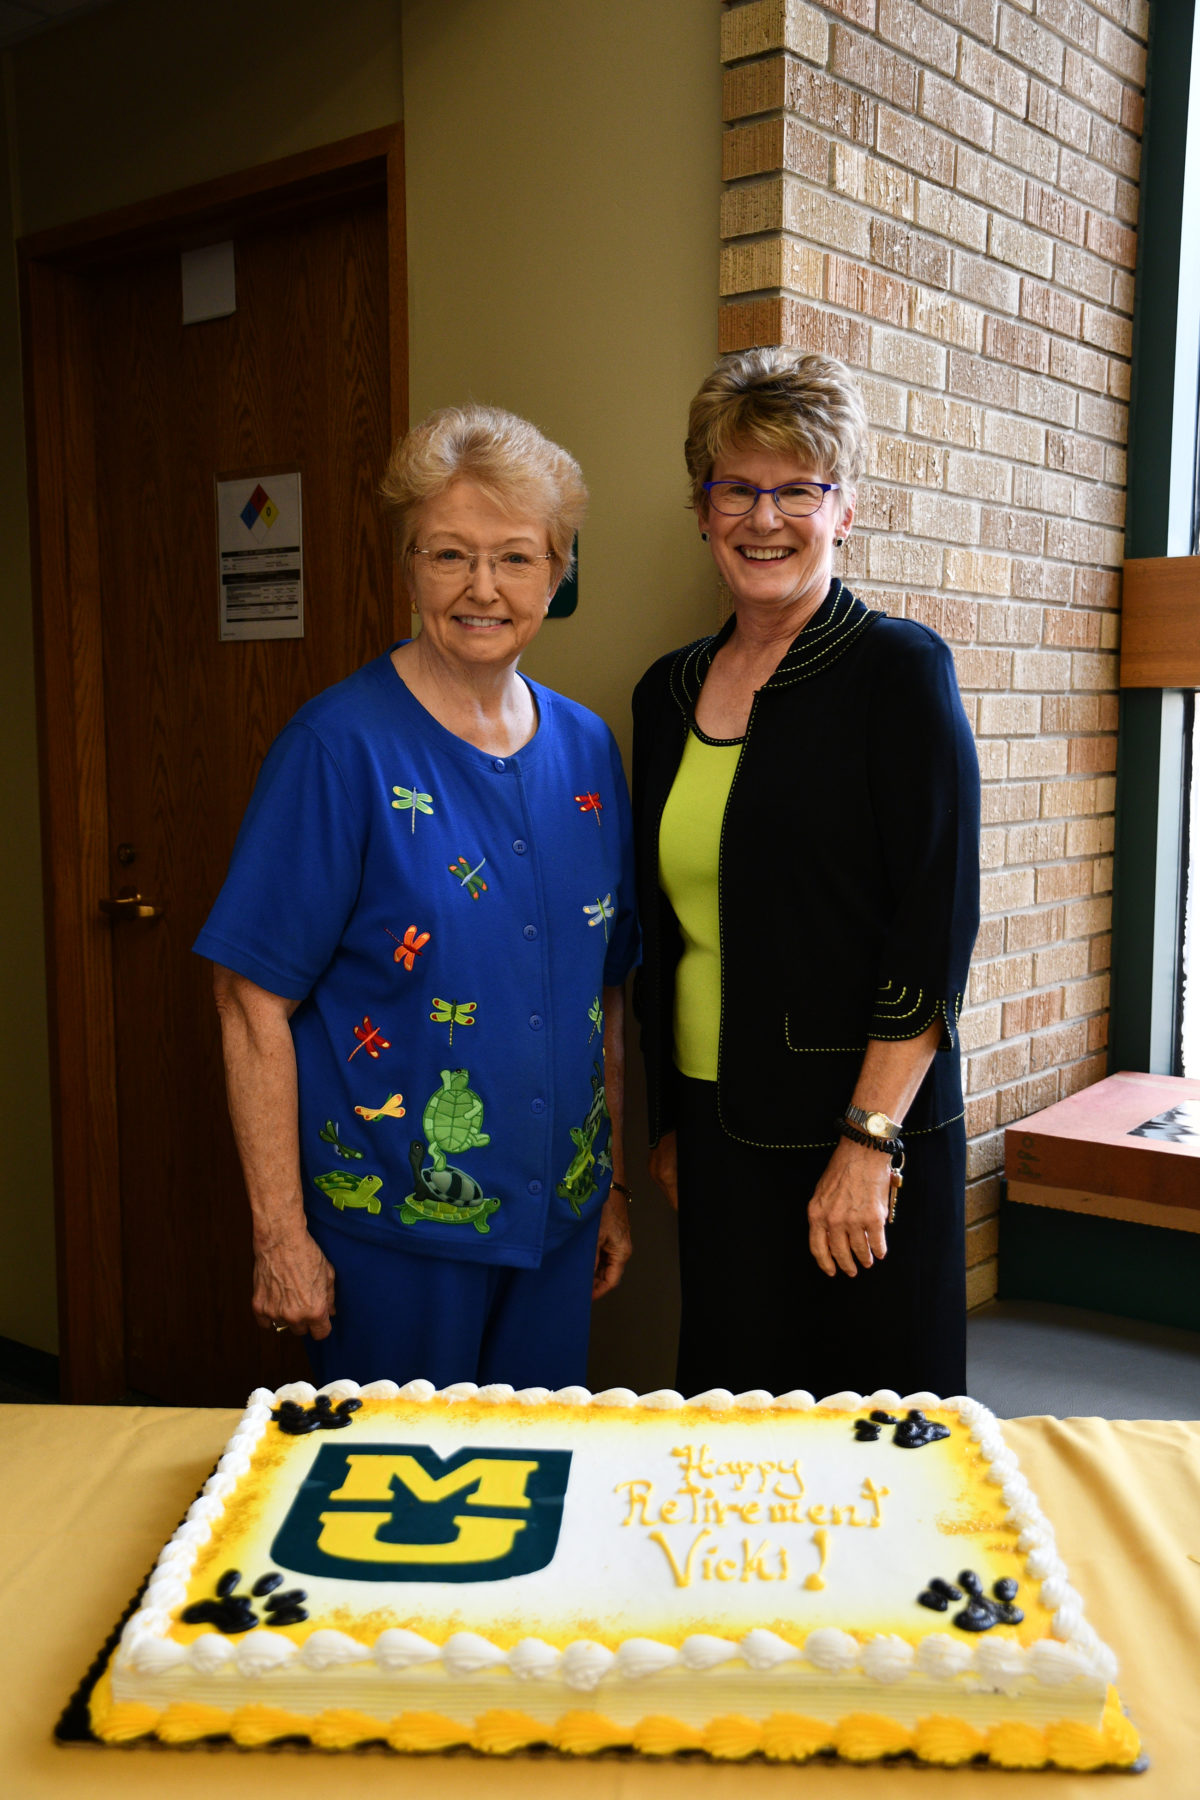 Researcher retires after 32-year career